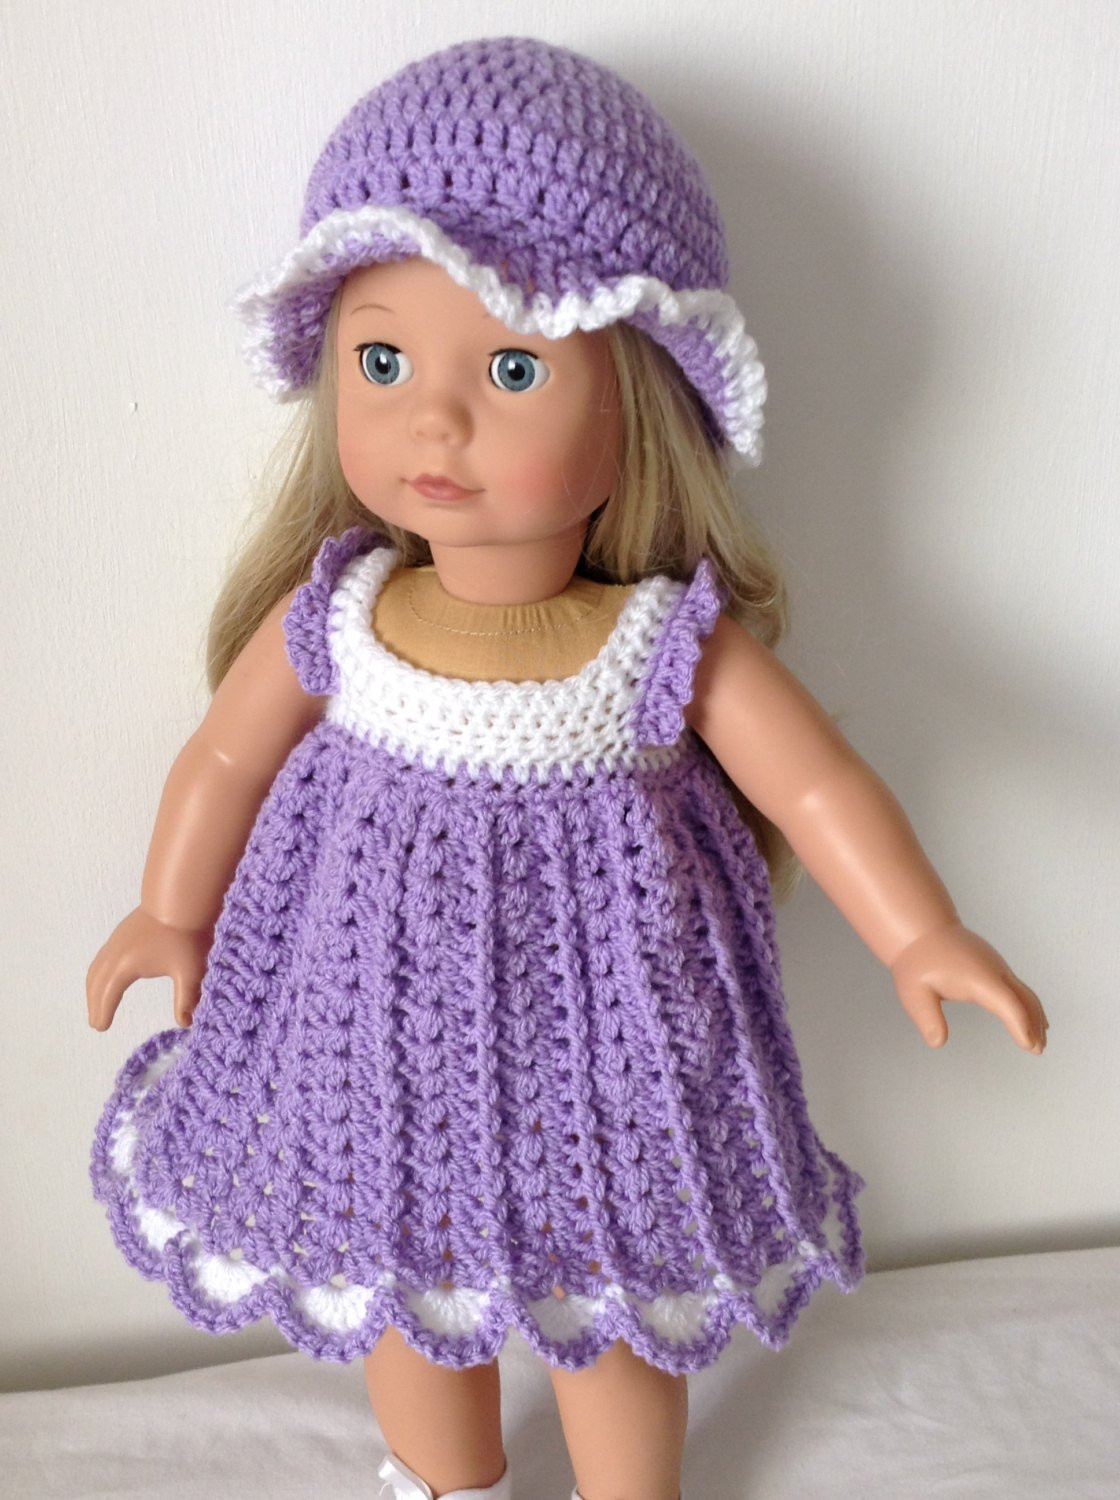 Crochet Doll Inspirational Pdf Crochet Pattern for 18 Inch Doll American Girl Doll or Of Delightful 47 Pictures Crochet Doll